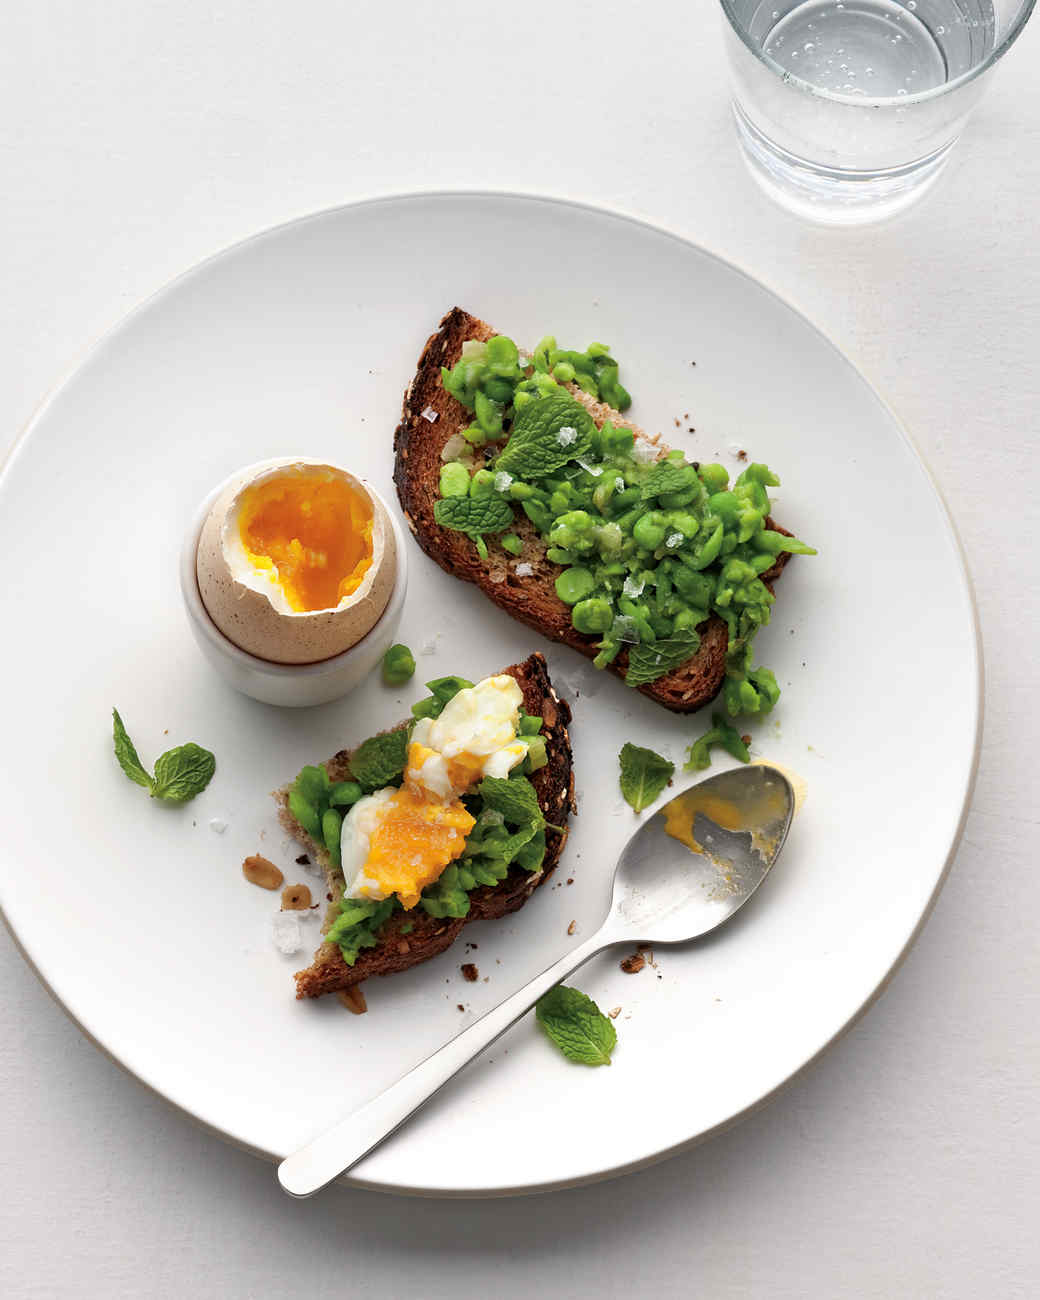 soft-boiled-egg-mashed-peas-toast-mbd108463.jpg